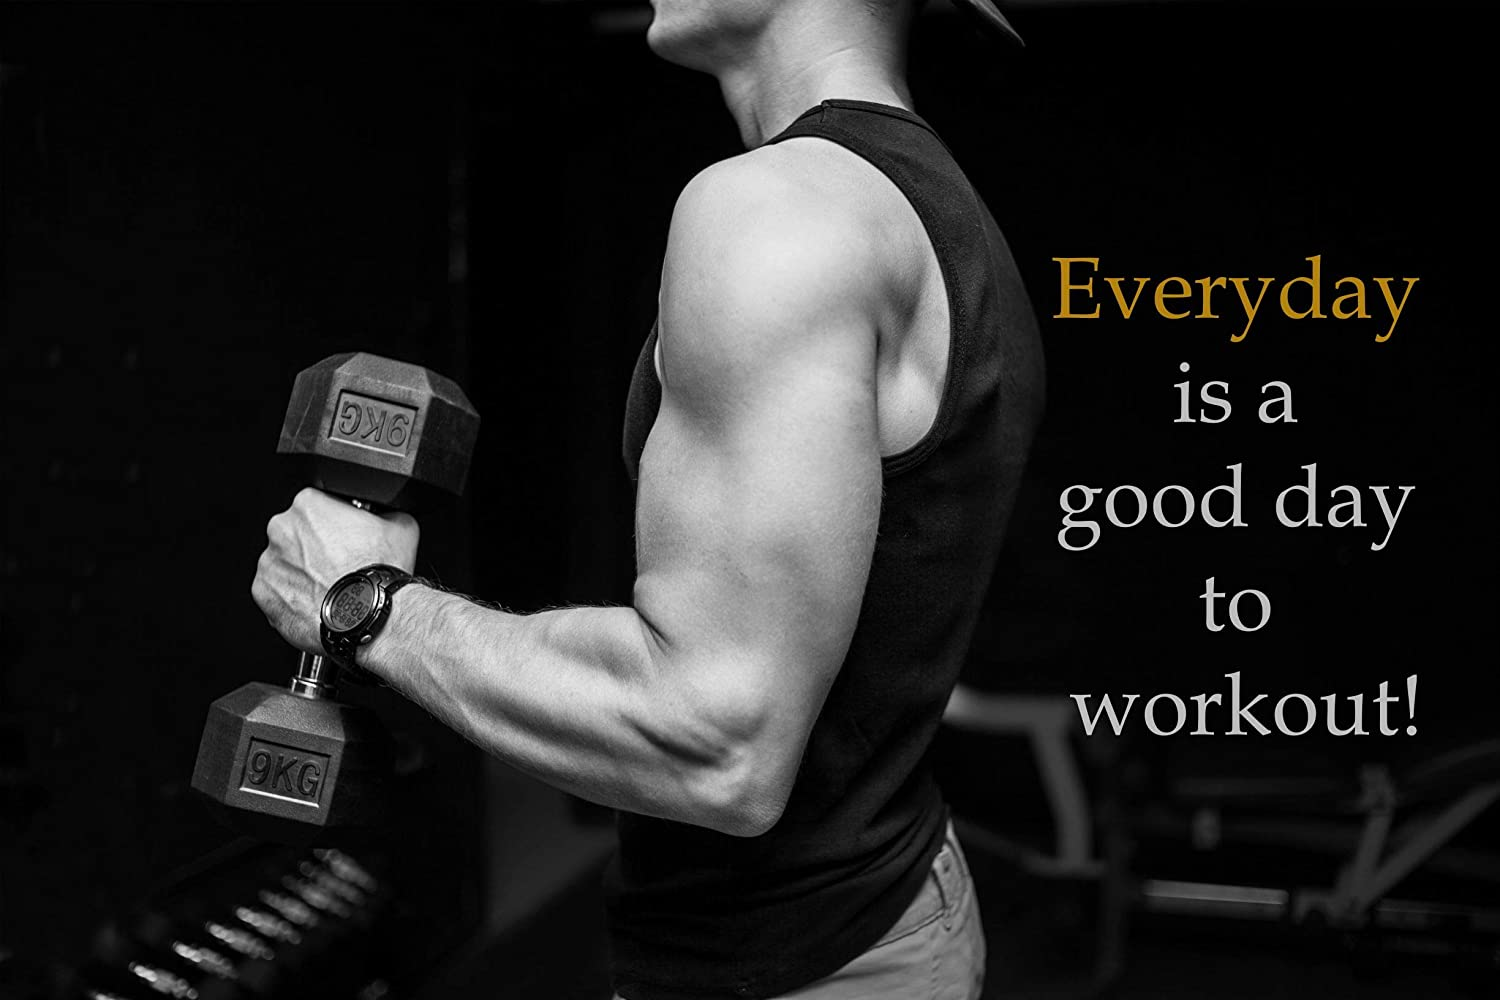 Ezposterprints Bodybuilding Men Girl Fitness Workout Quotes Motivational Inspirational Muscle Gym Posters Wall Art Print For Home Office Gym Motivation Quote 1 36x24 Inches Amazon In Home Kitchen